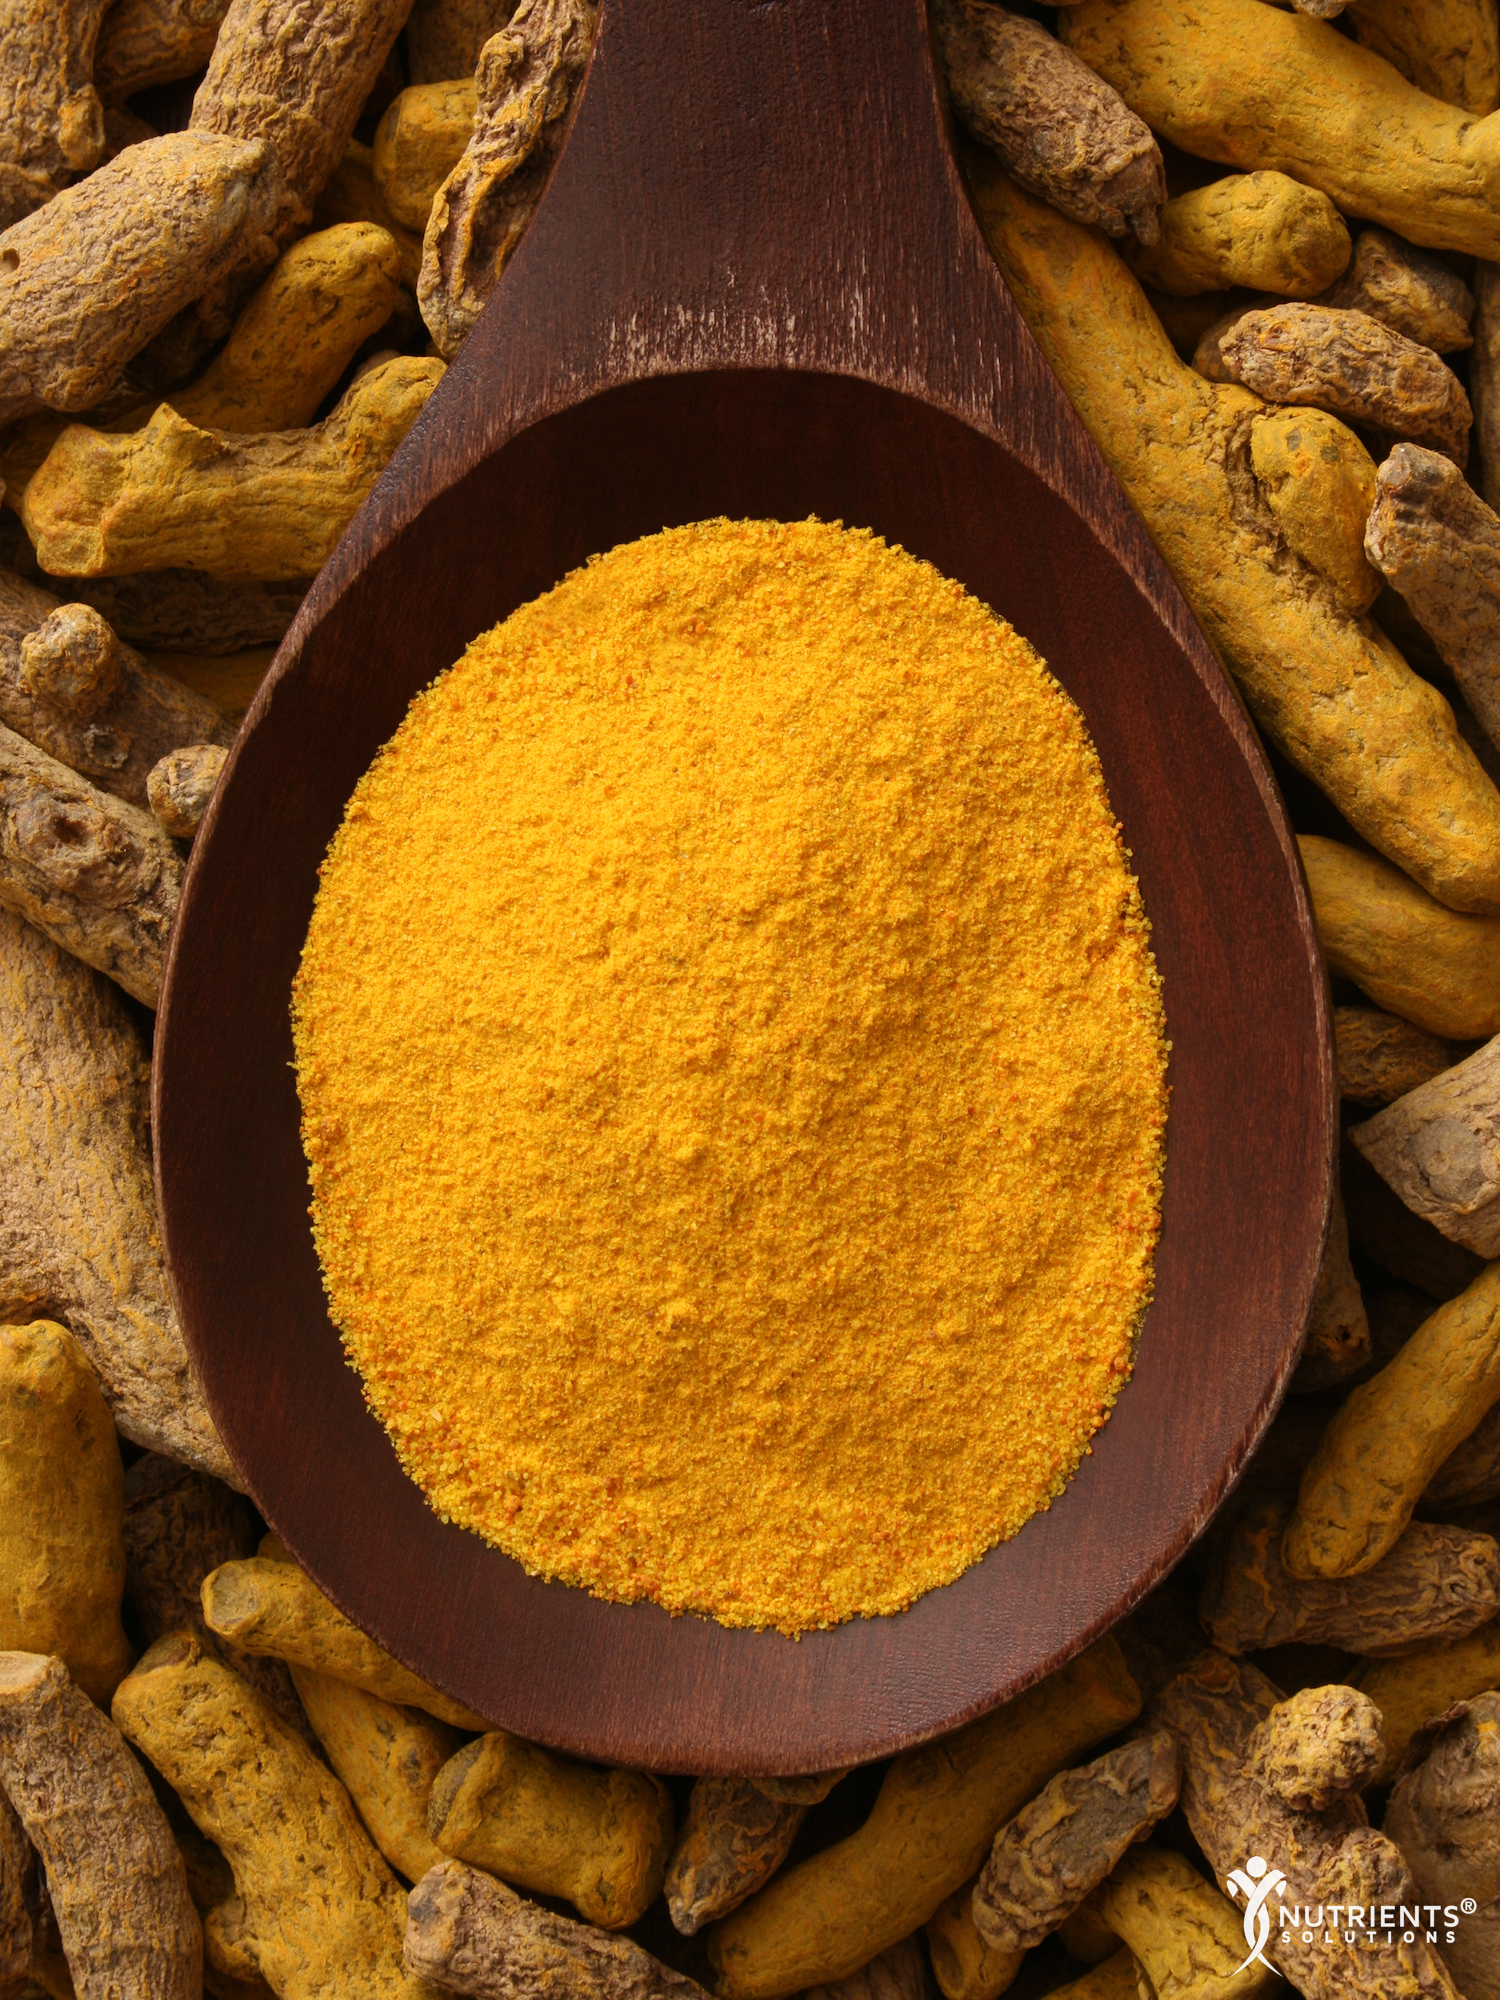 The Numerous Benefits of Turmeric